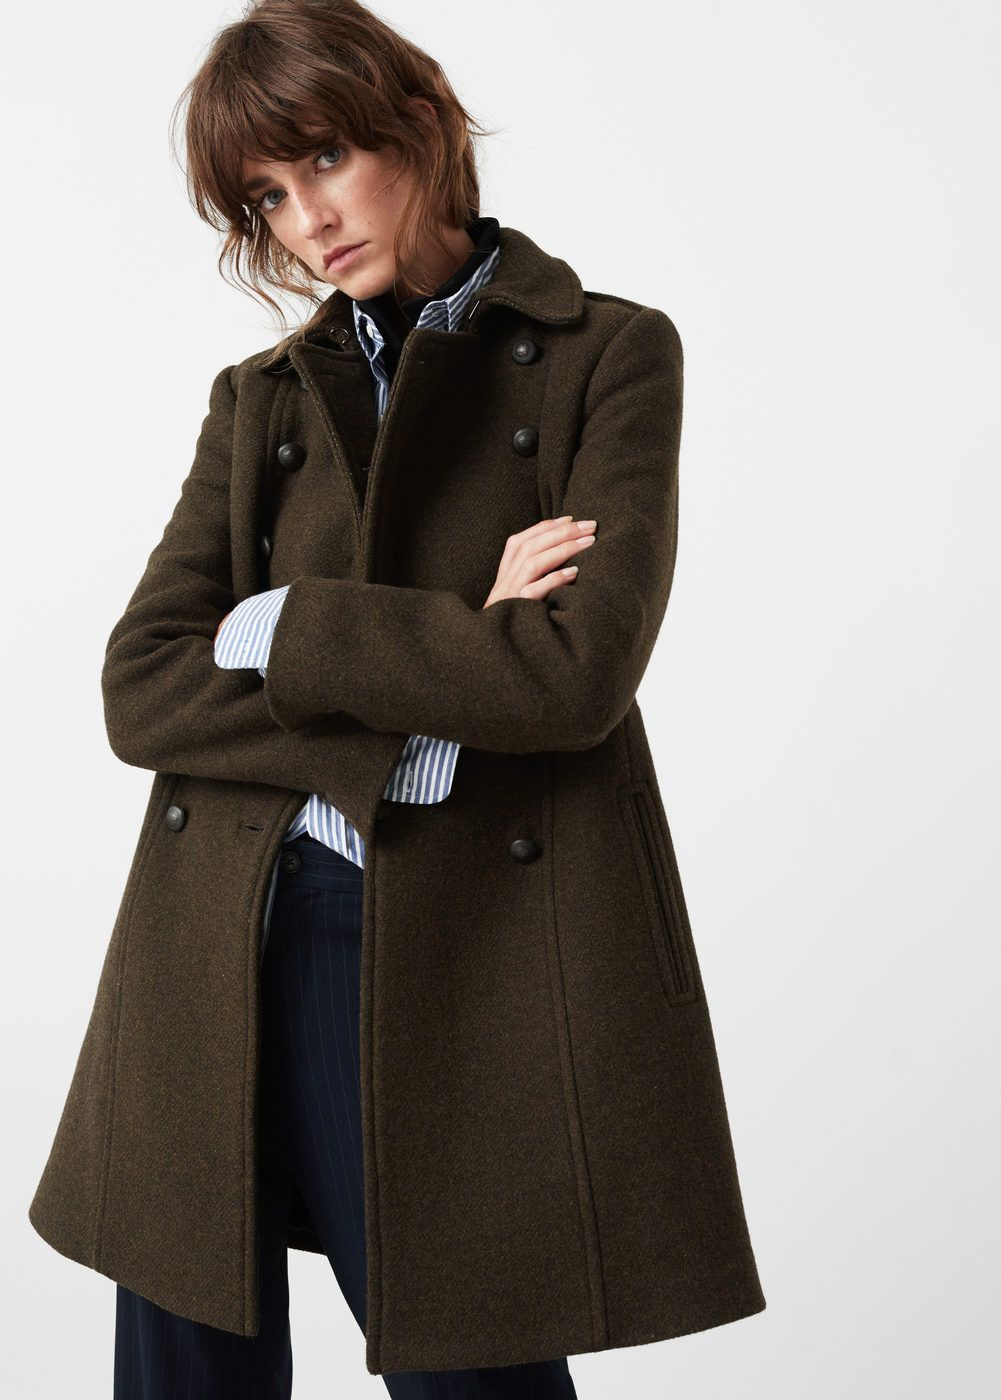 Military style wool coat | Military style, Wool coats and Coats